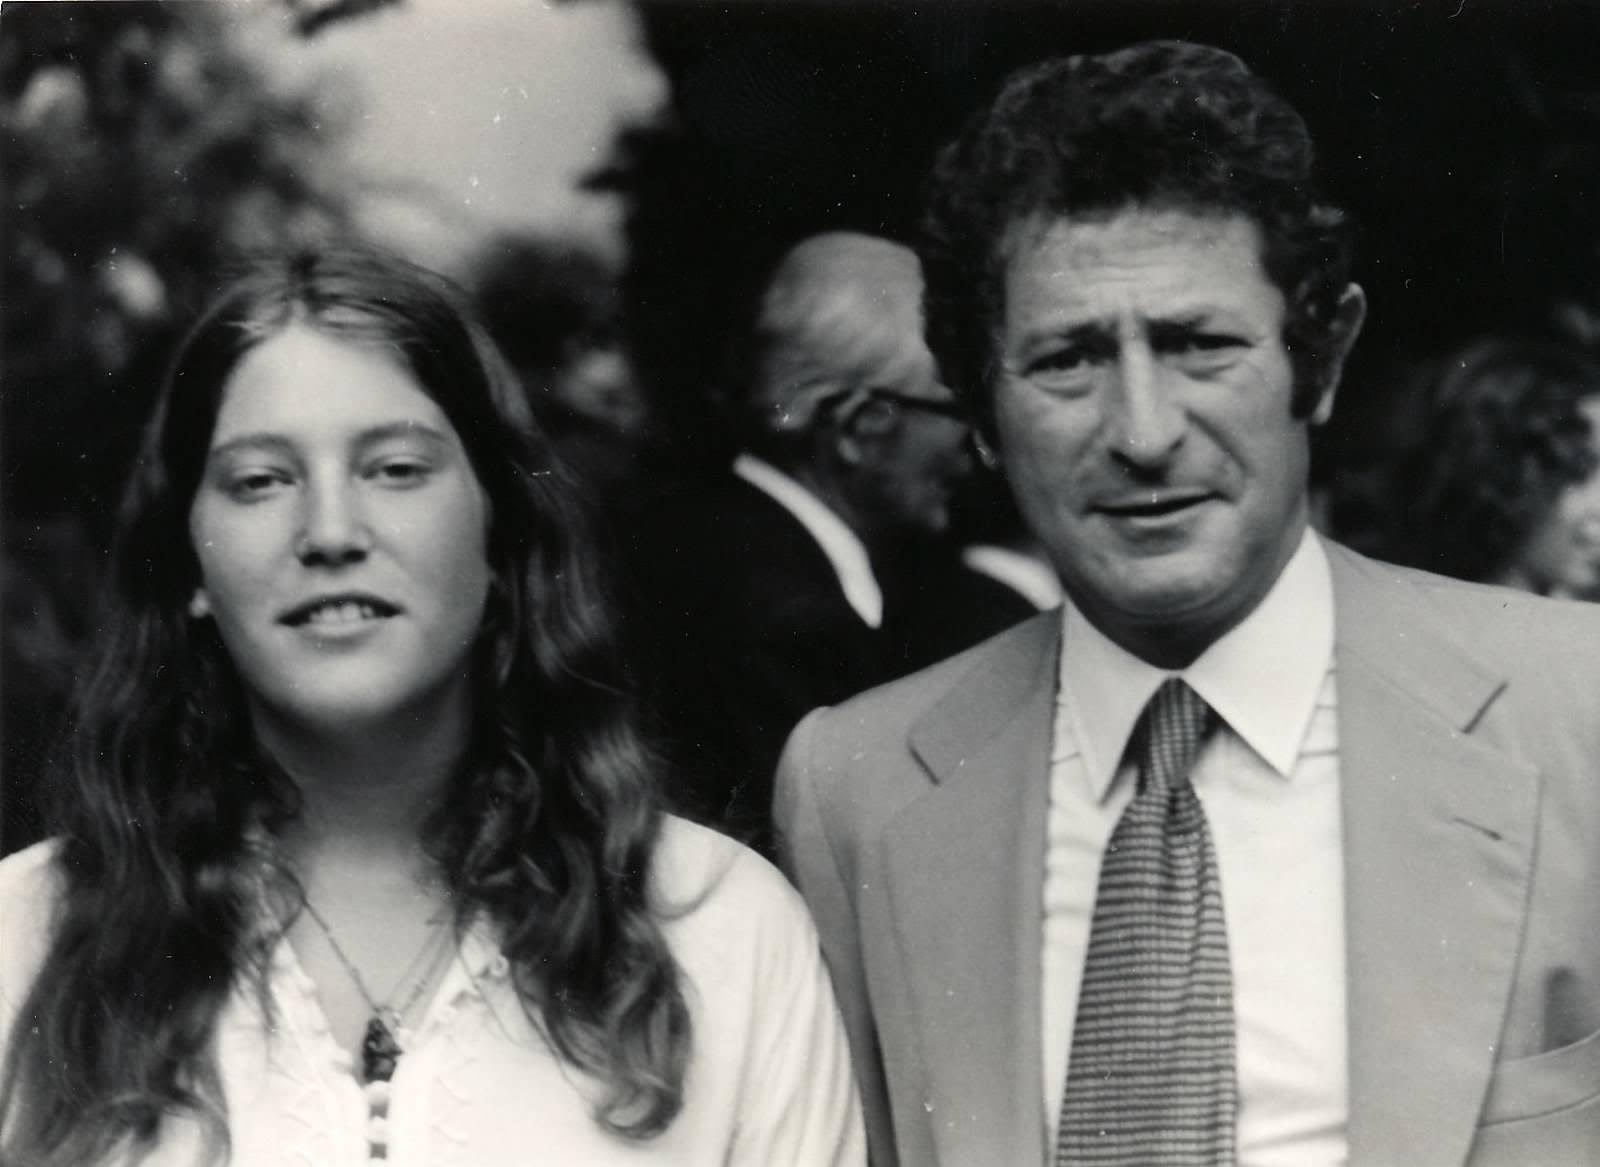 Andrea with her father in May 1973 at her high school graduation from TASIS (The American School in Switzerland) in Lugano.